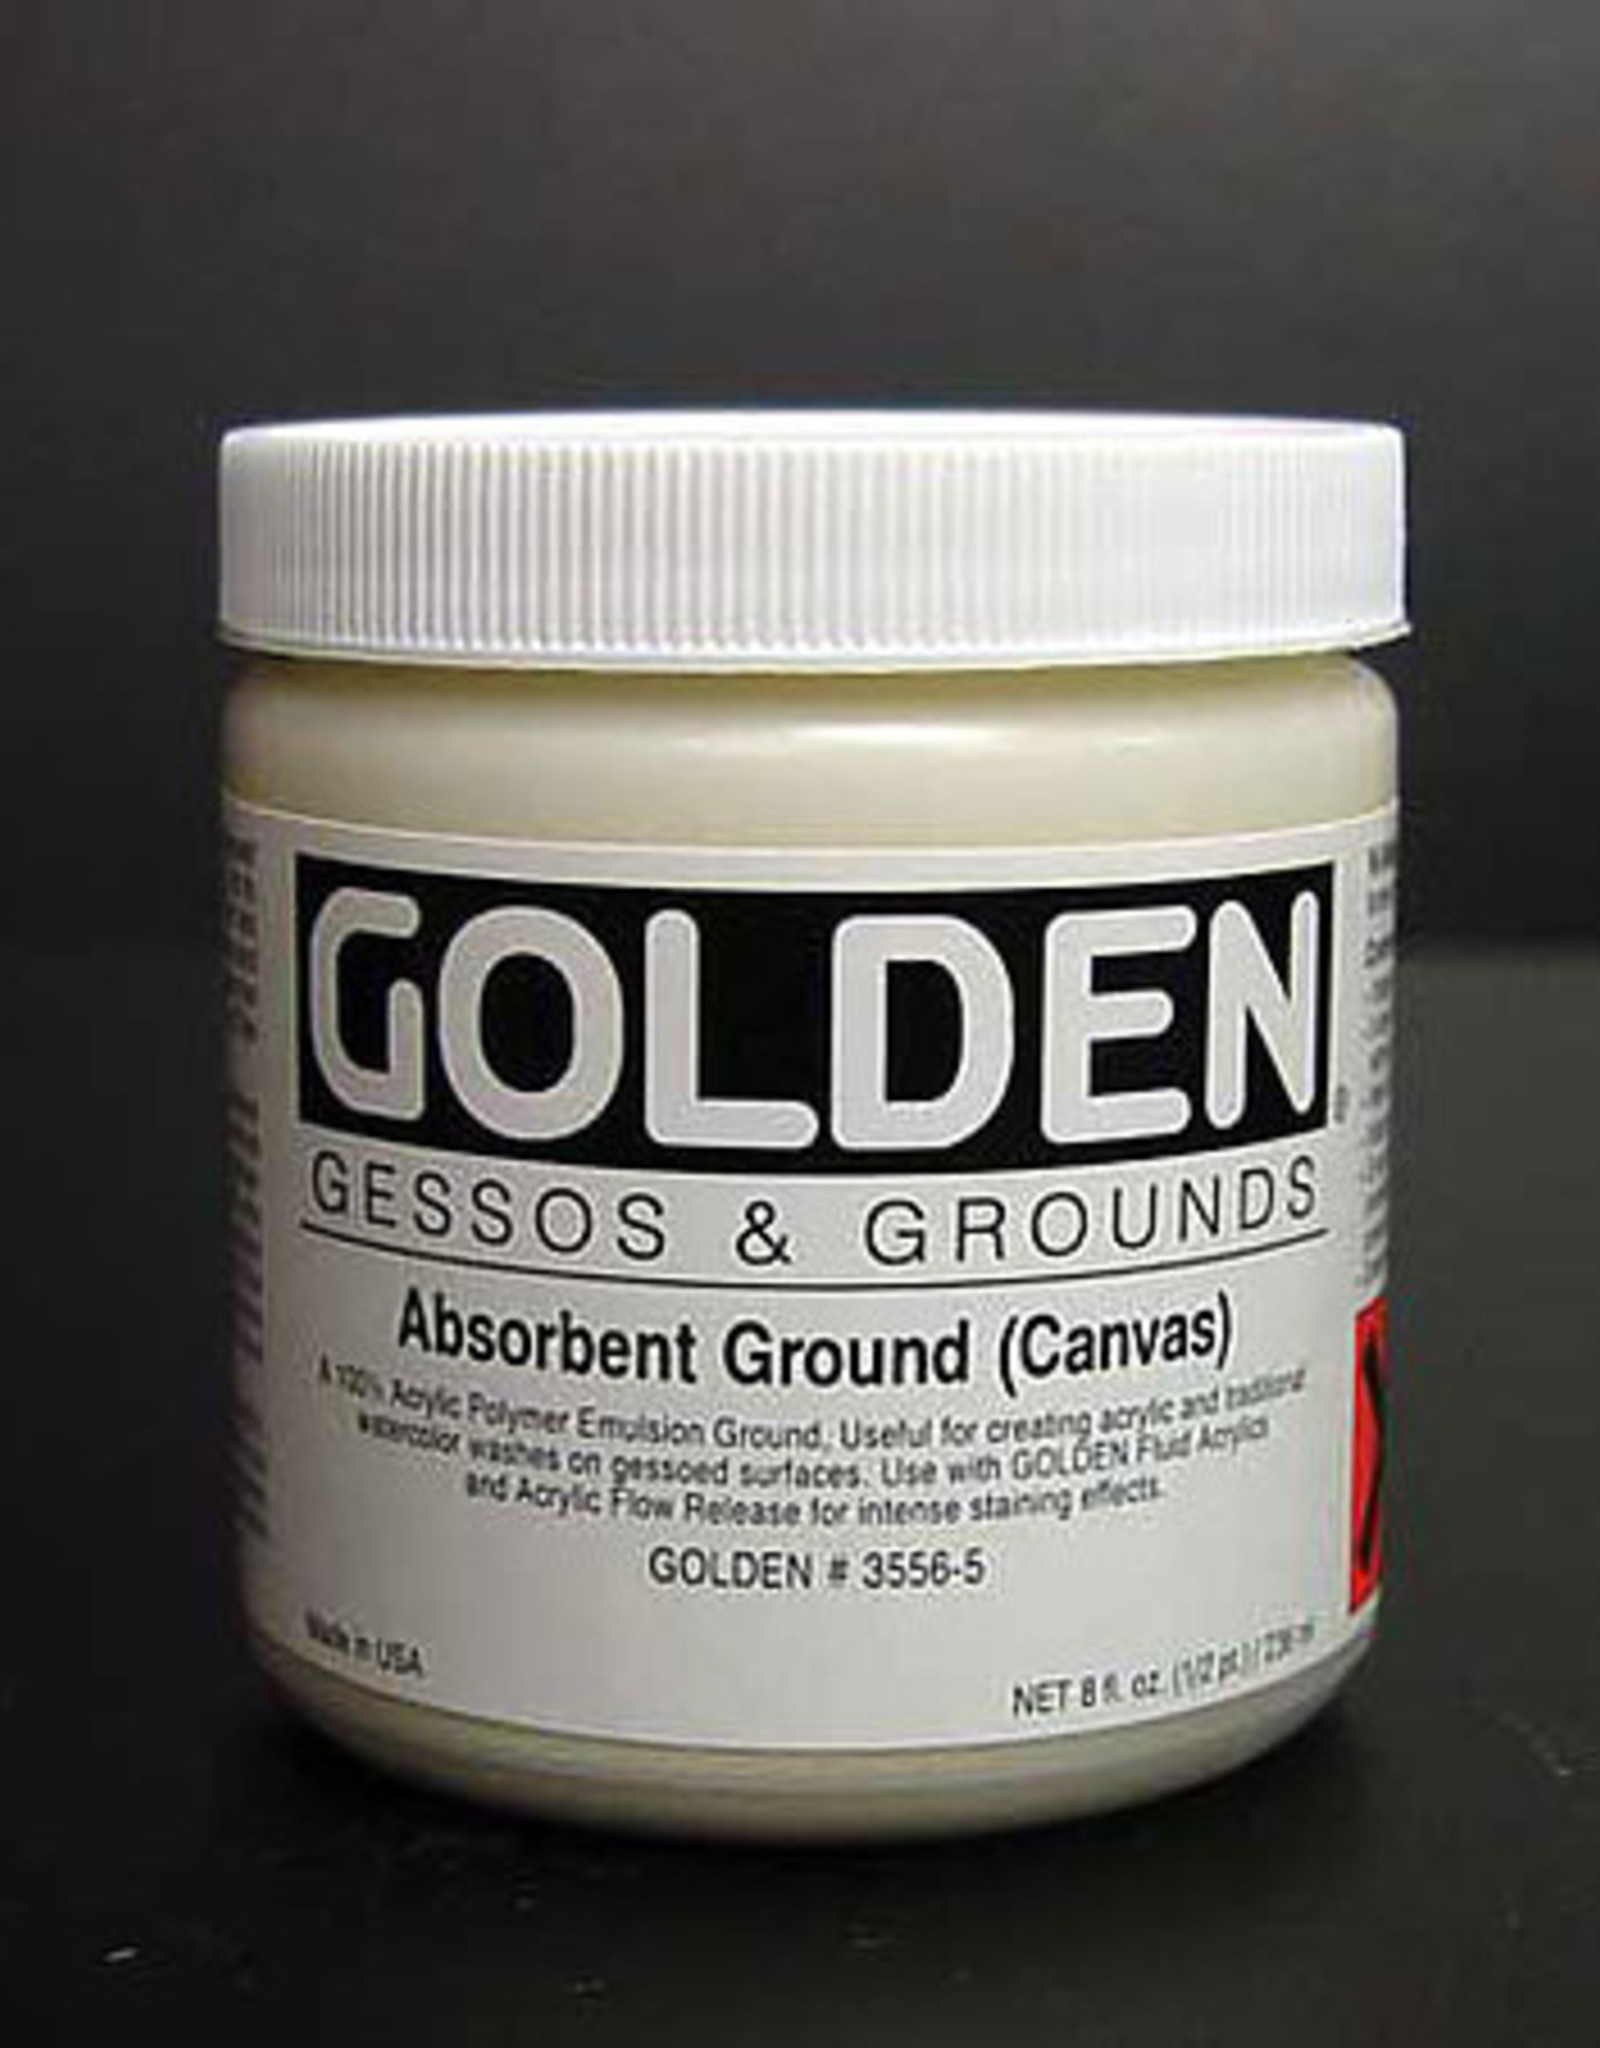 Golden Absorbent Ground 8 oz